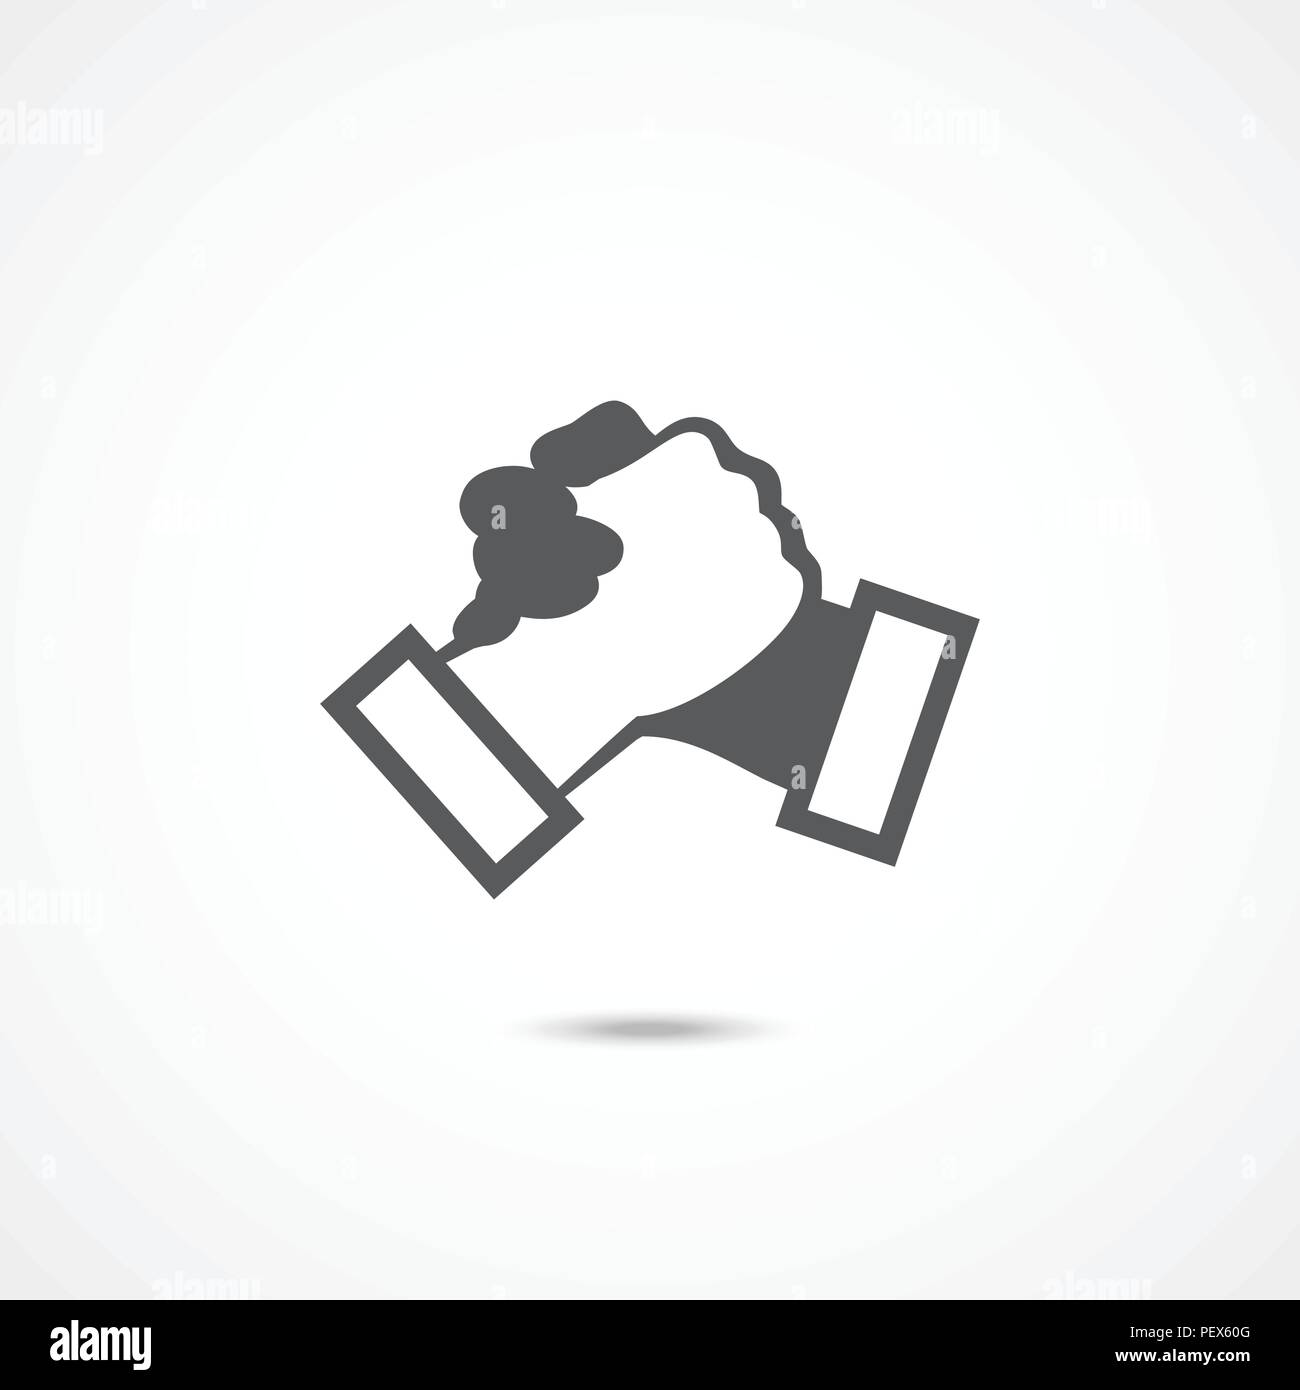 Handshake icon on white - Stock Image